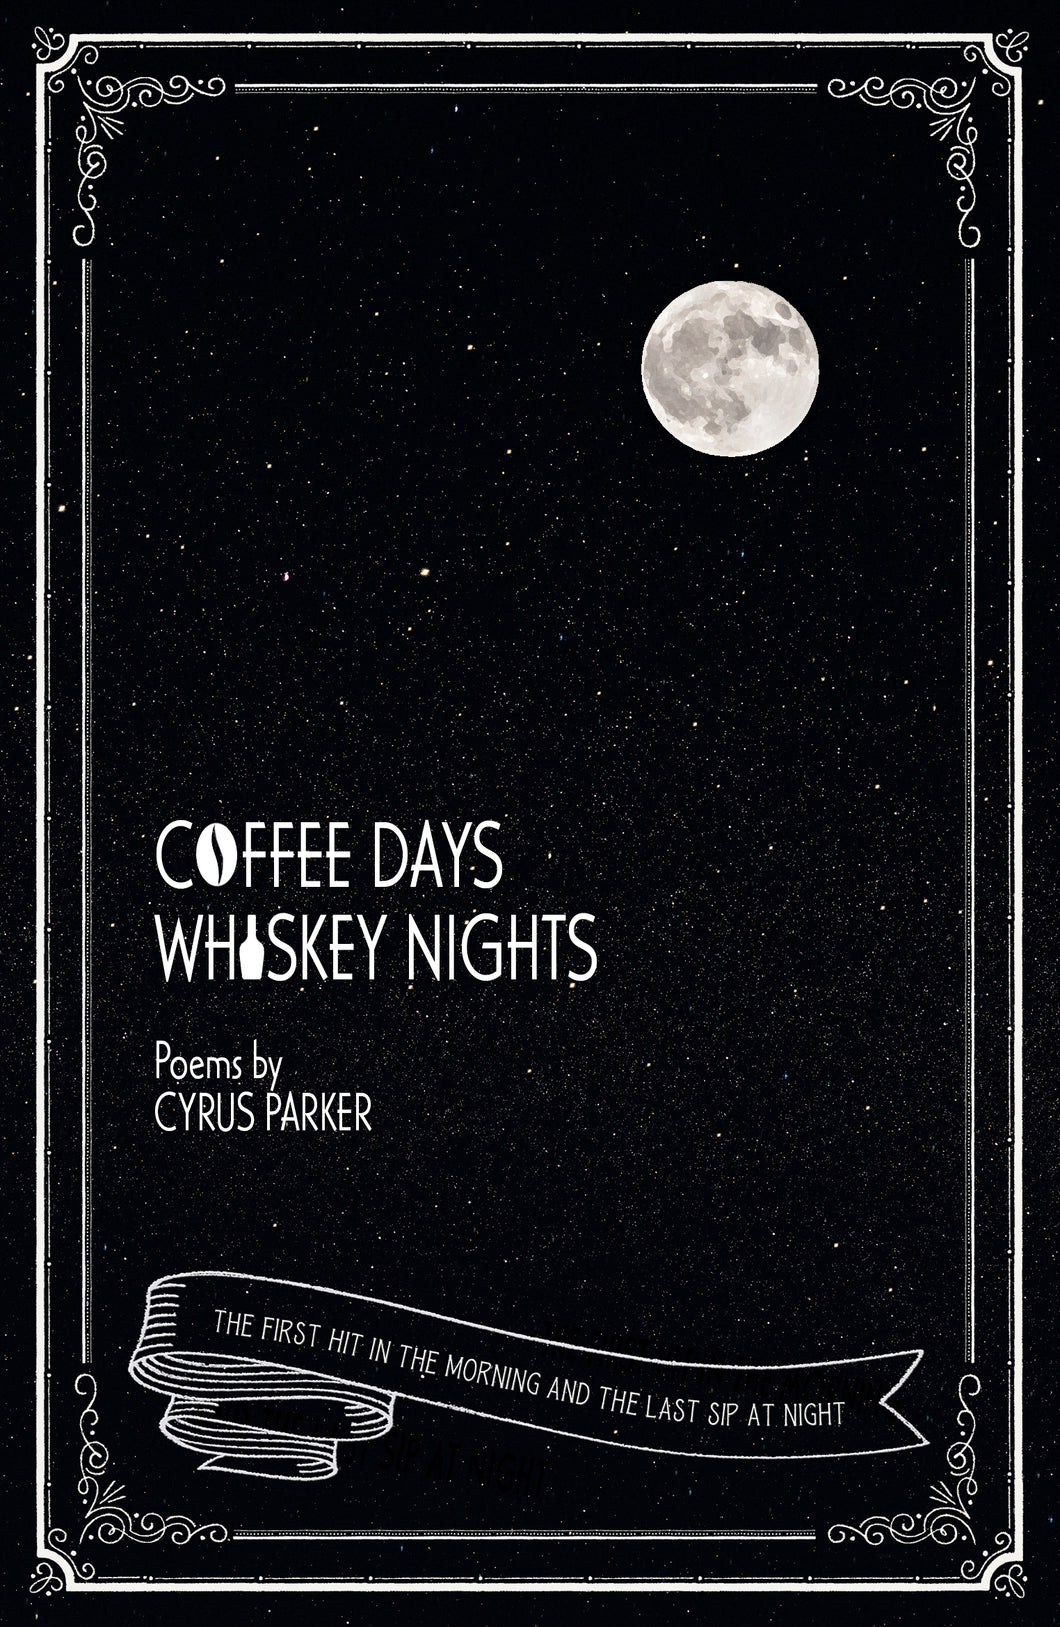 Coffee Days, Whiskey Nights